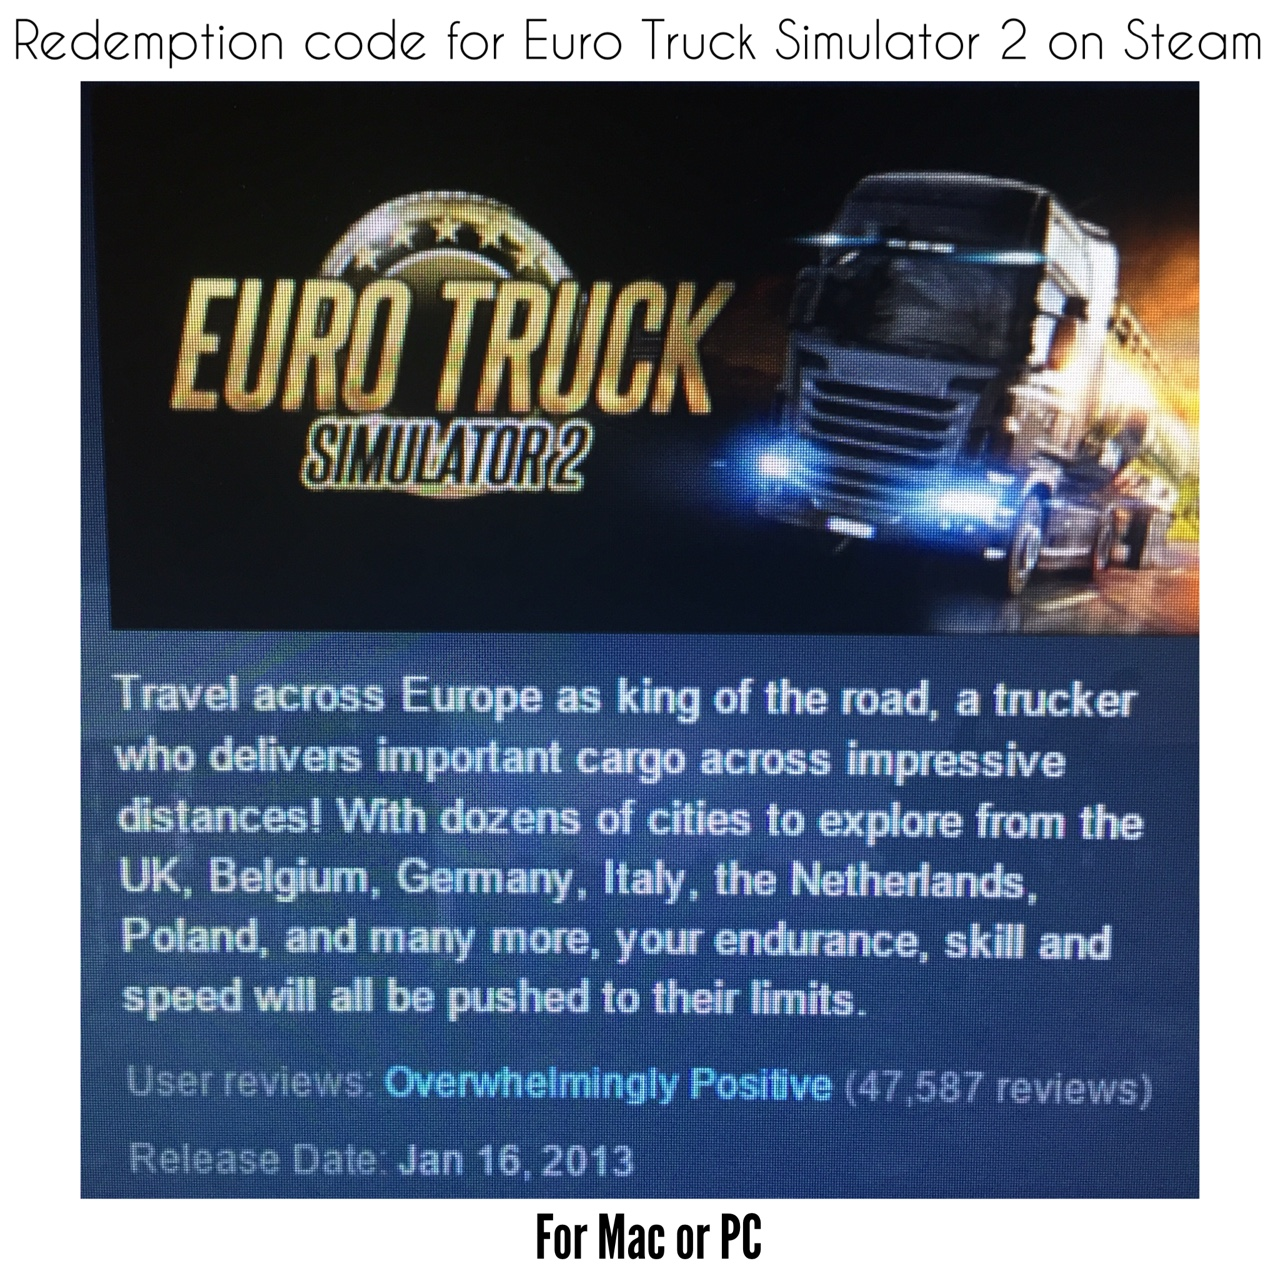 Redemption code for Euro Truck Simulator 2 on Steam